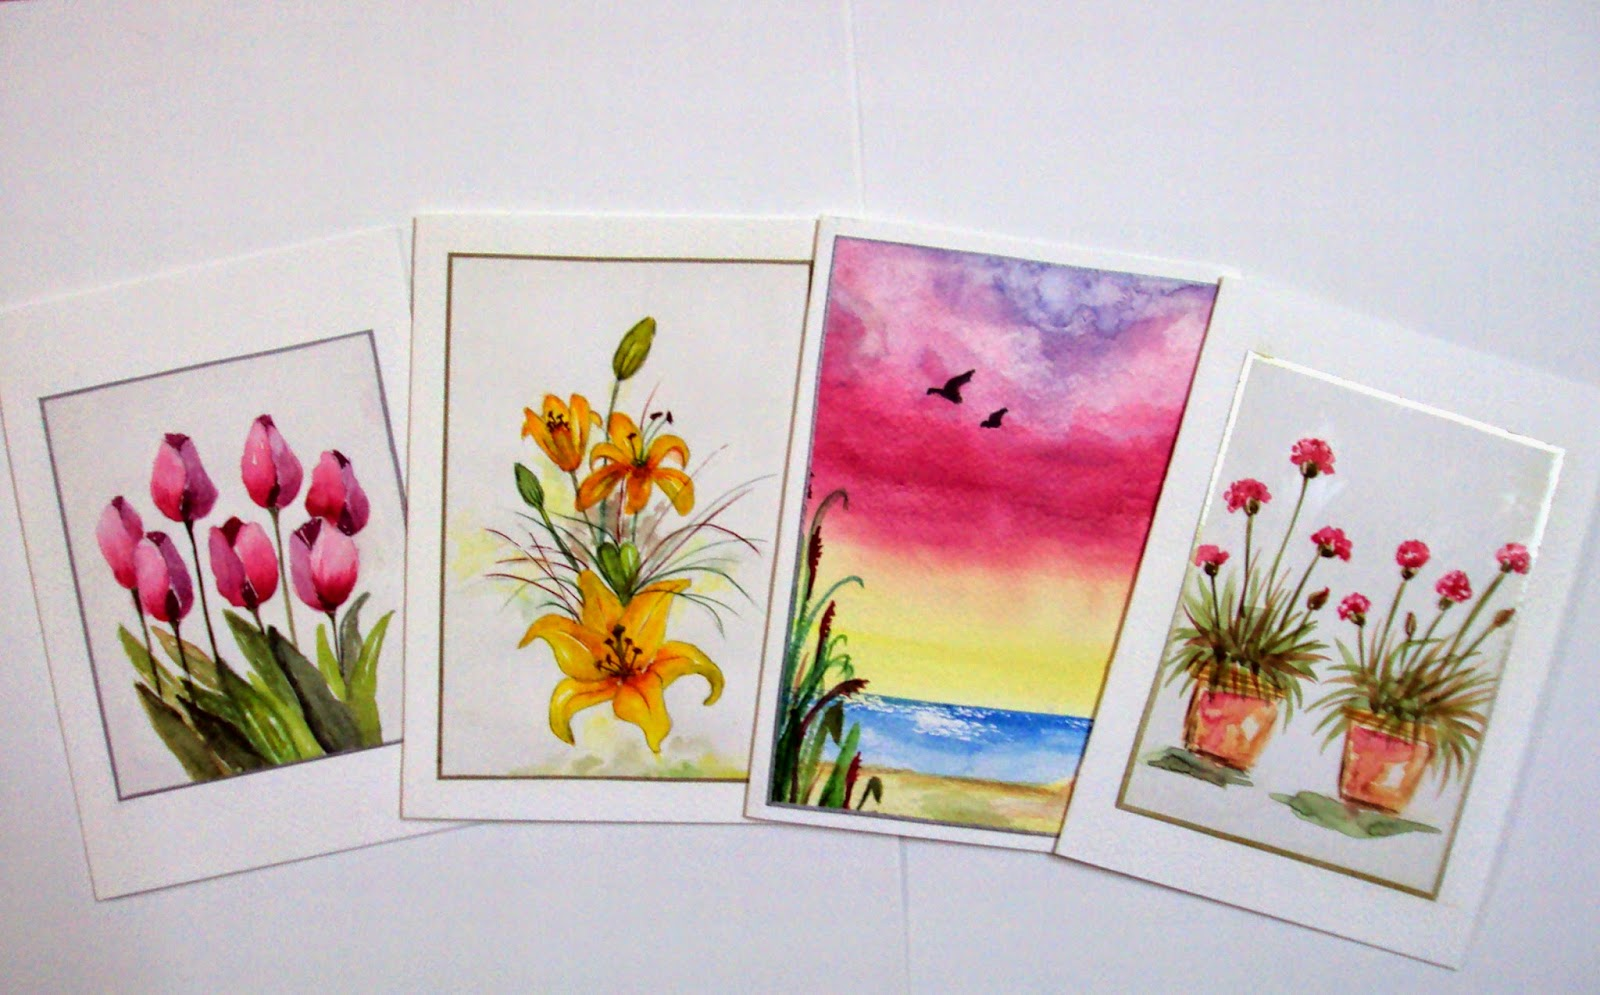 handpainted, greetingcards, cards, art, diy, DIY, project, creation, handmade